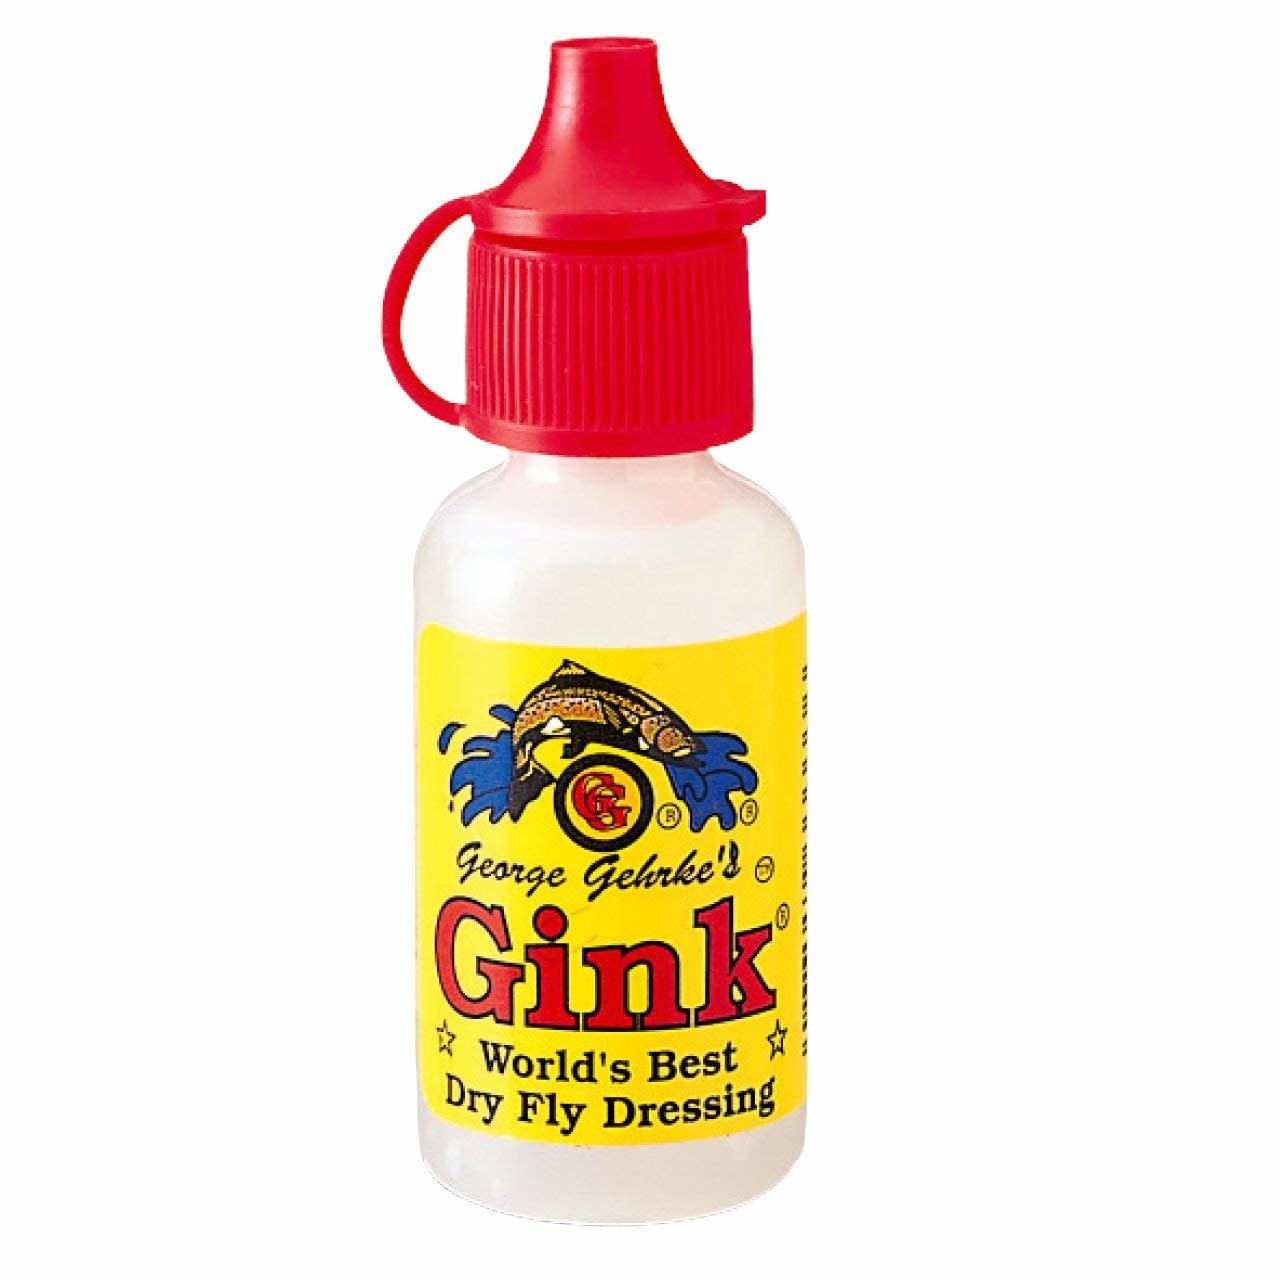 Anglers Accessories Gehrke's Gink